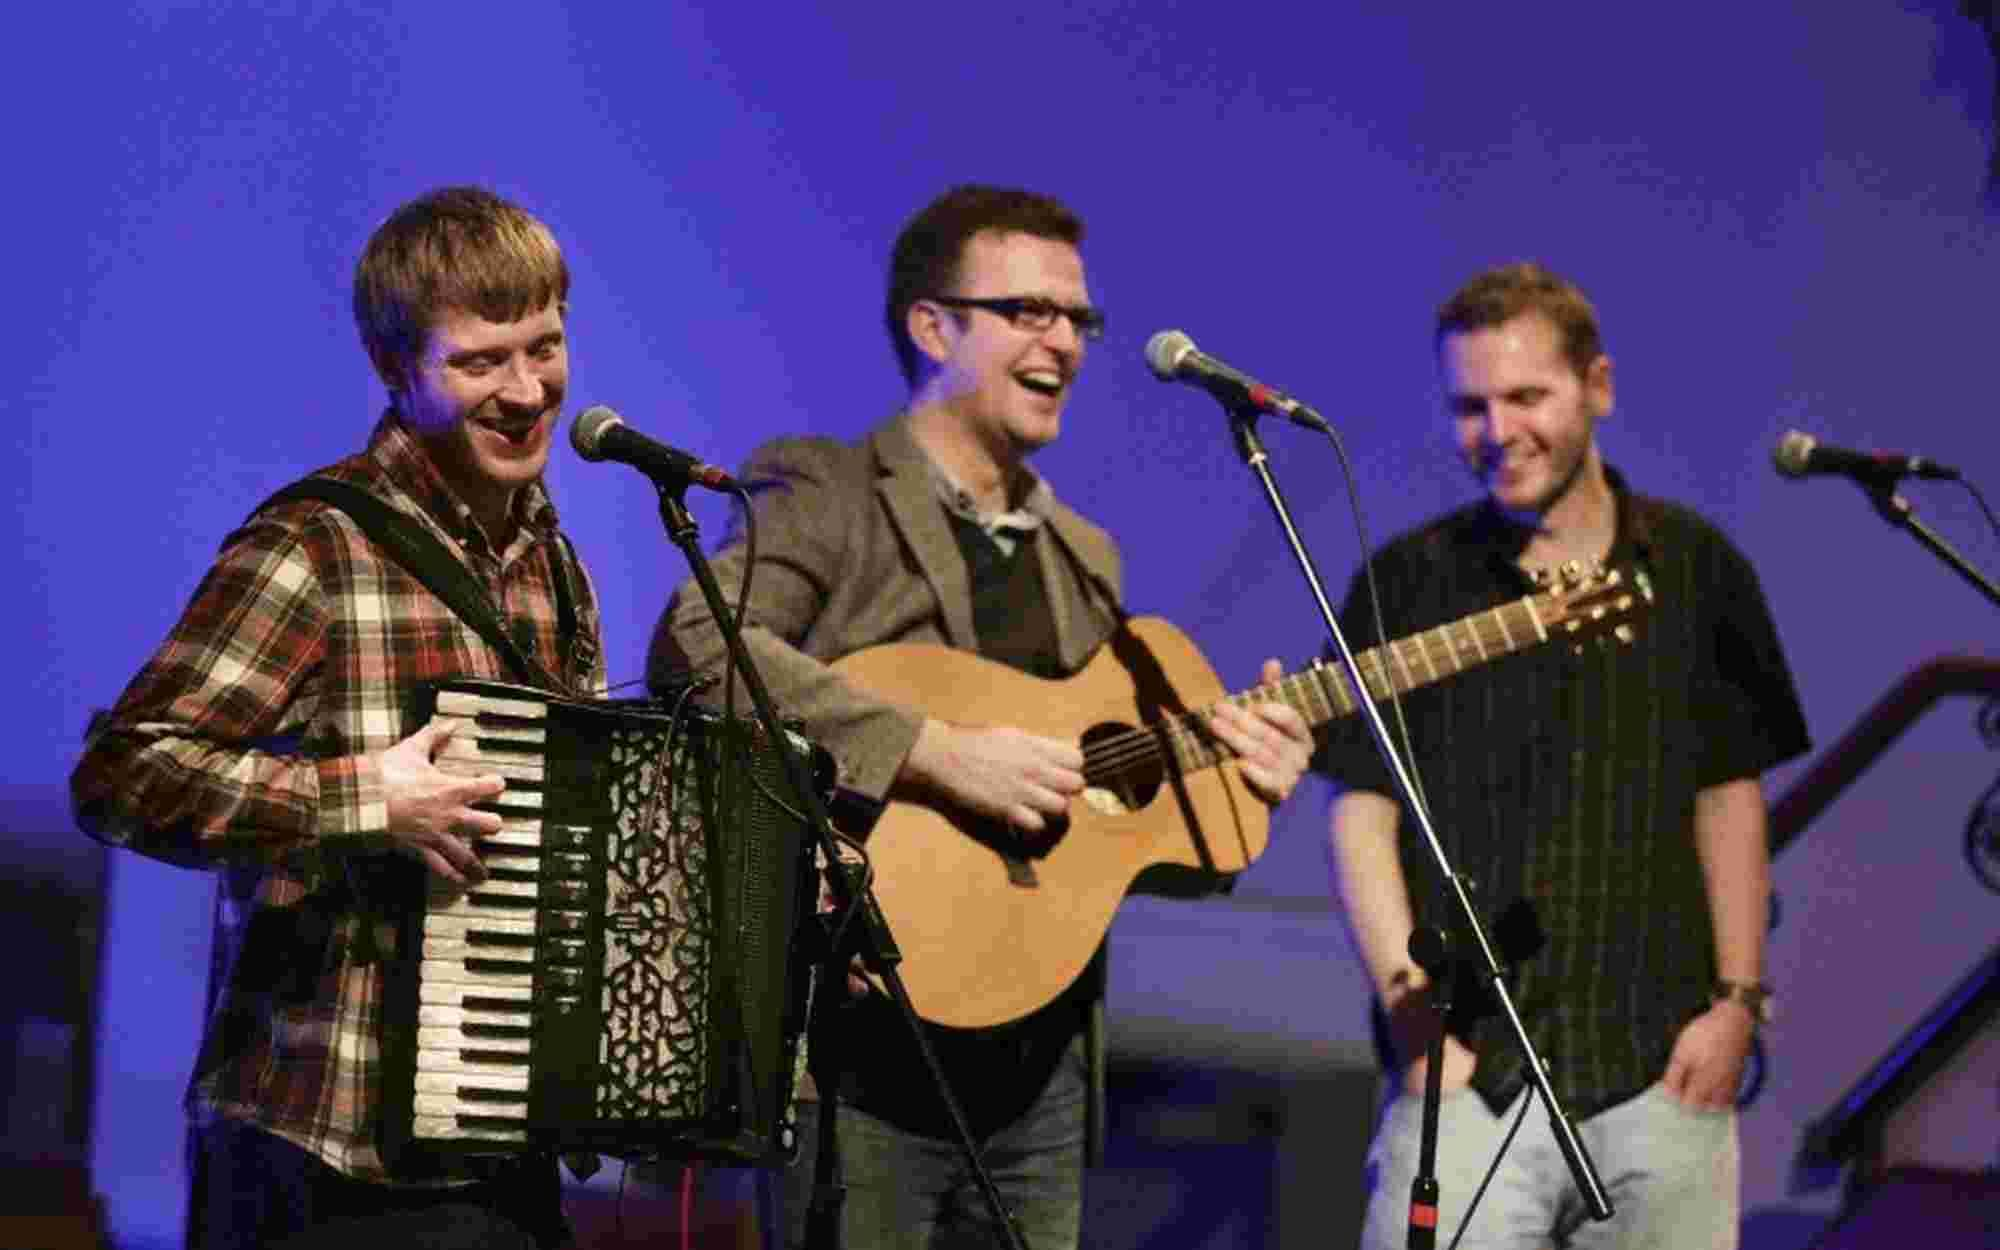 Popular folk band to play Alderholt this Sunday